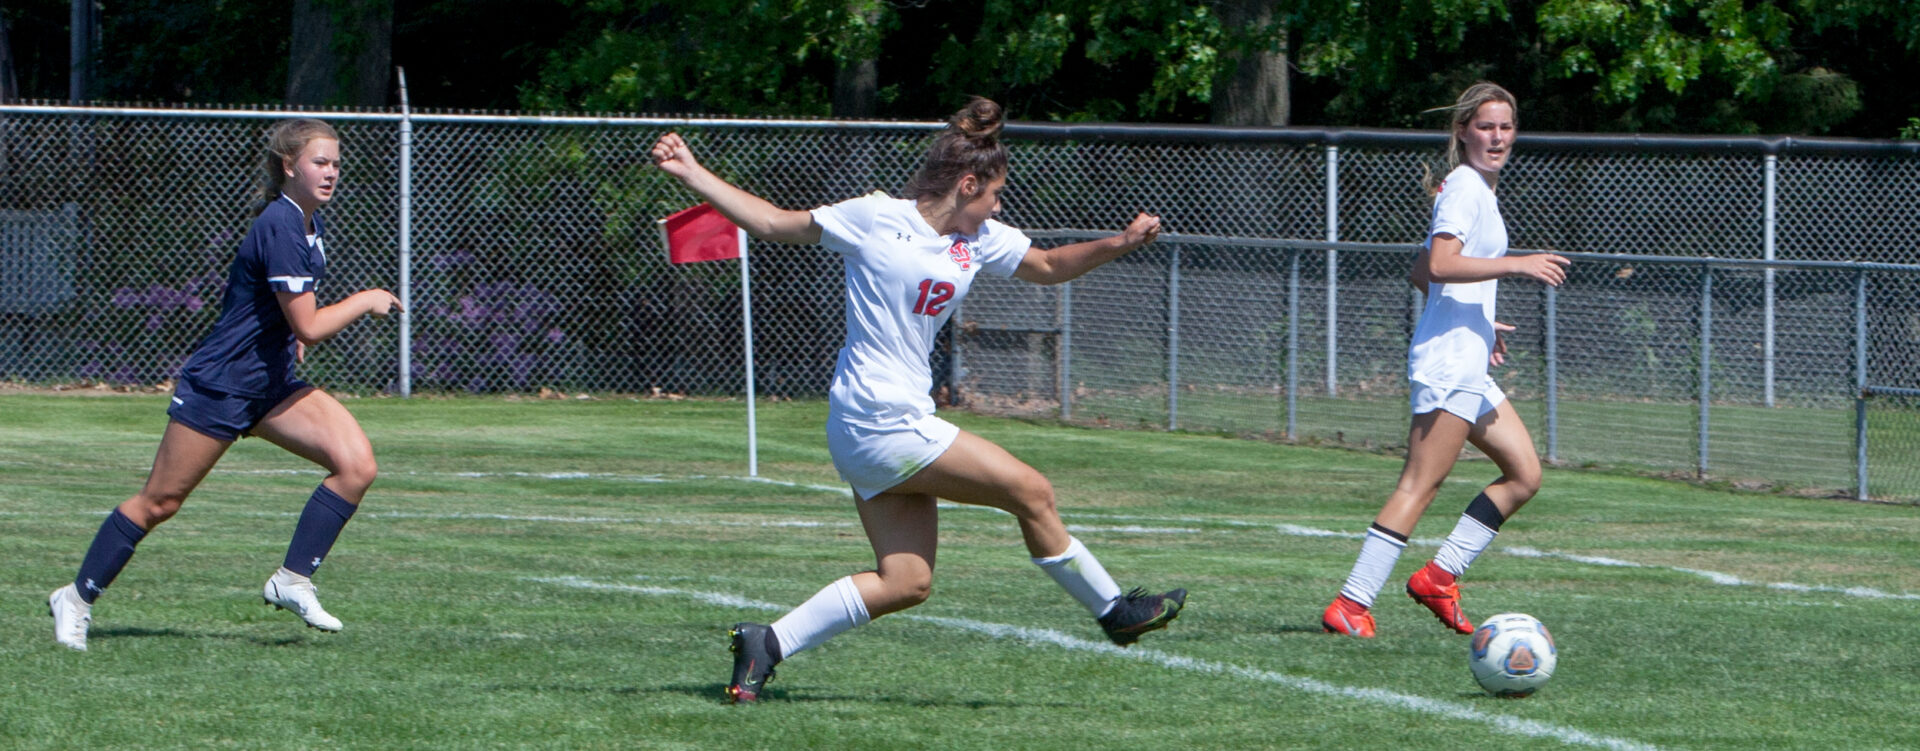 Bajt nets hat trick to lead Spring Lake to 4-0 win over Fruitport, fifth straight district title